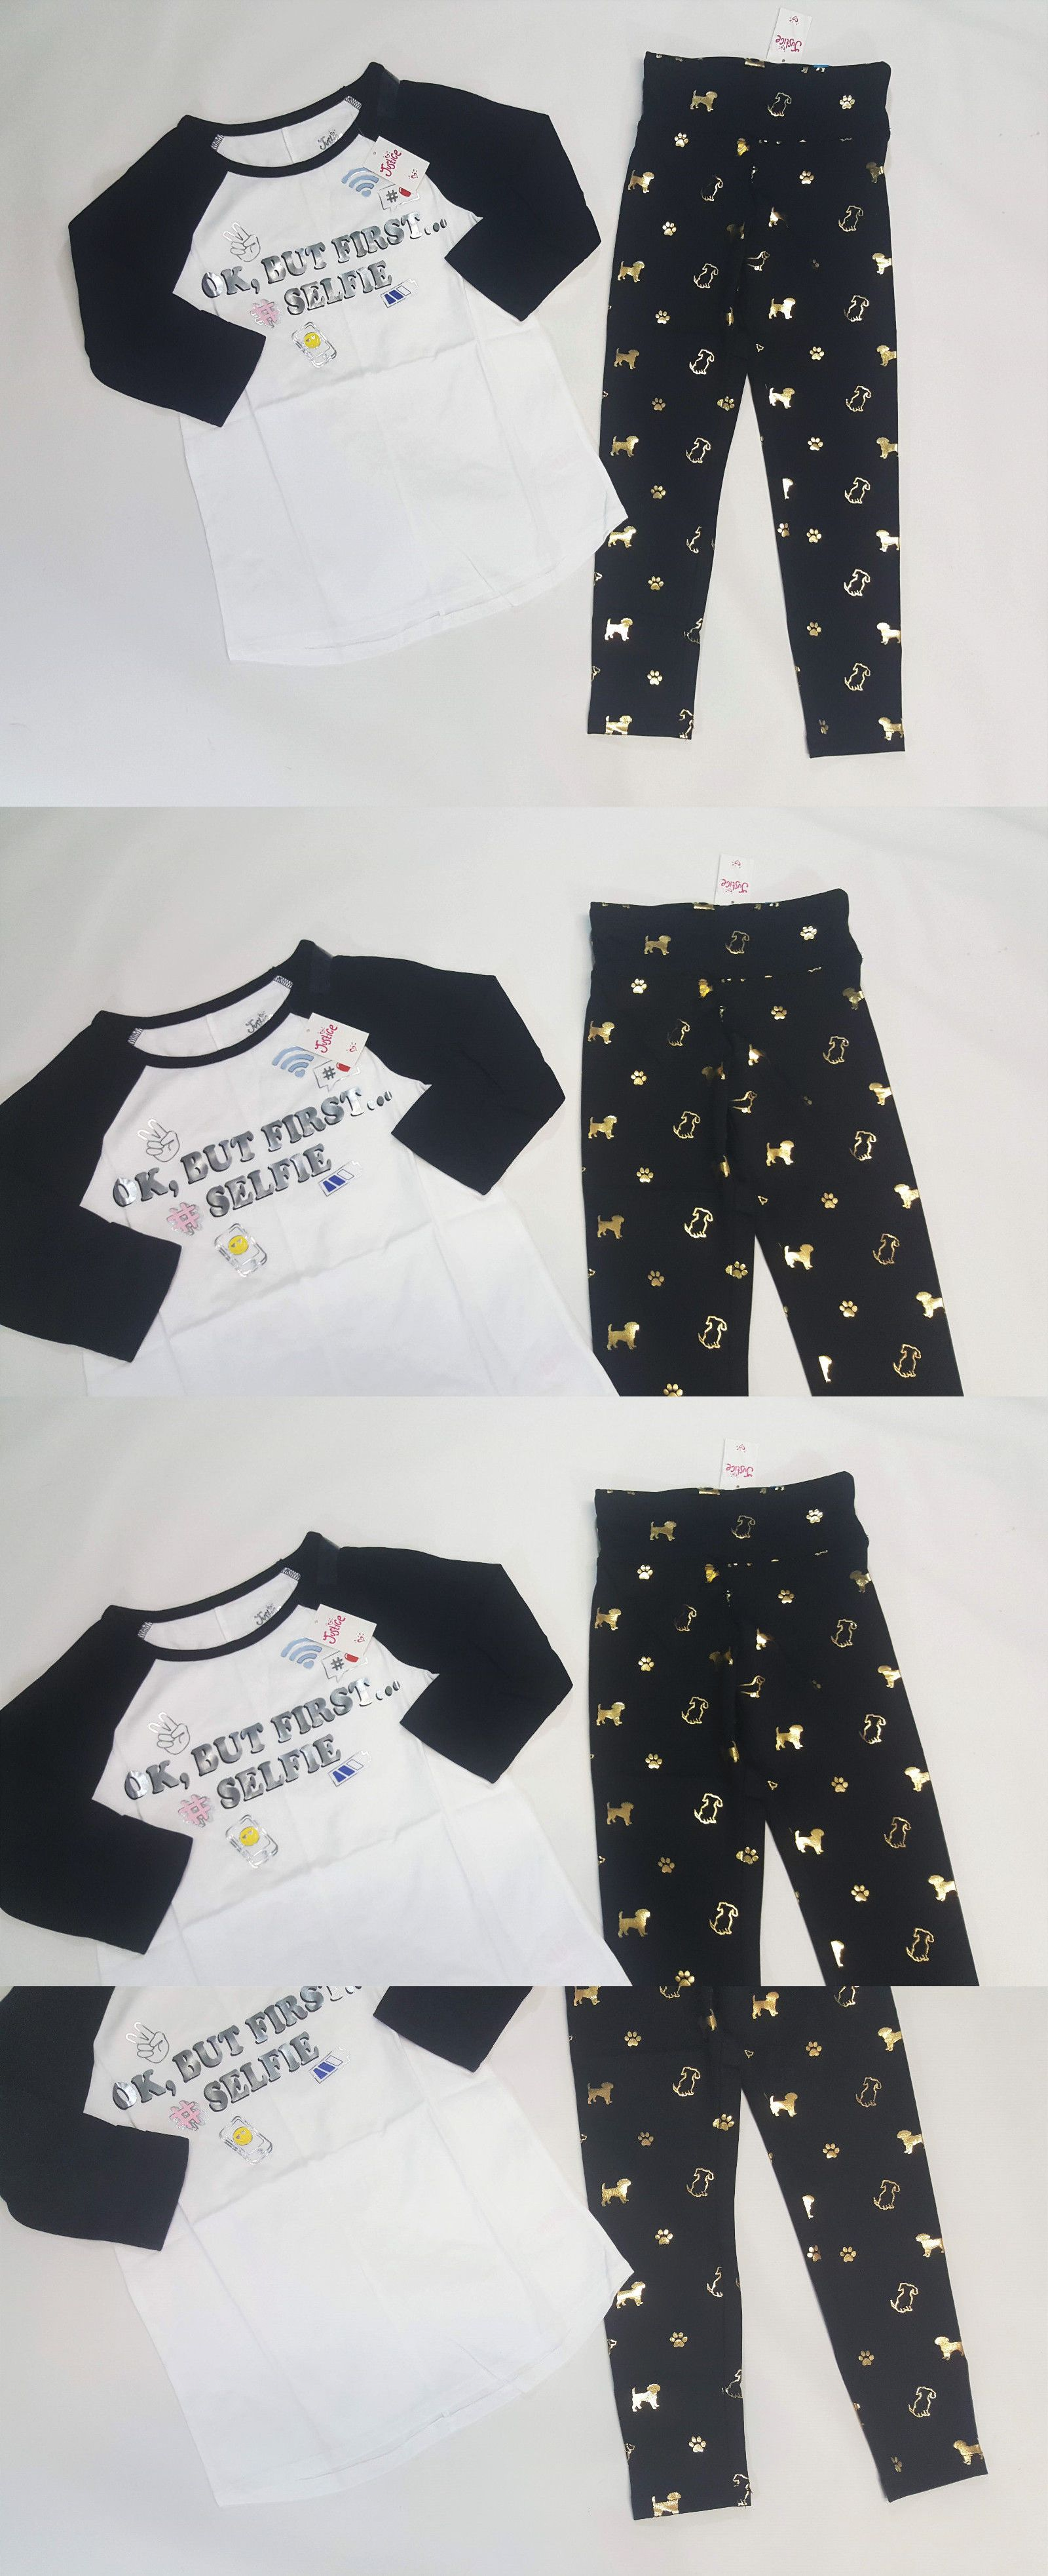 d4d605ea8e7b9 Outfits and Sets 156801: Nwt Justice Kids Girls Size 7 8 Or 10 Black White  Emoji Shirt Top And Dog Leggings -> BUY IT NOW ONLY: $15.29 on #eBay  #outfits ...